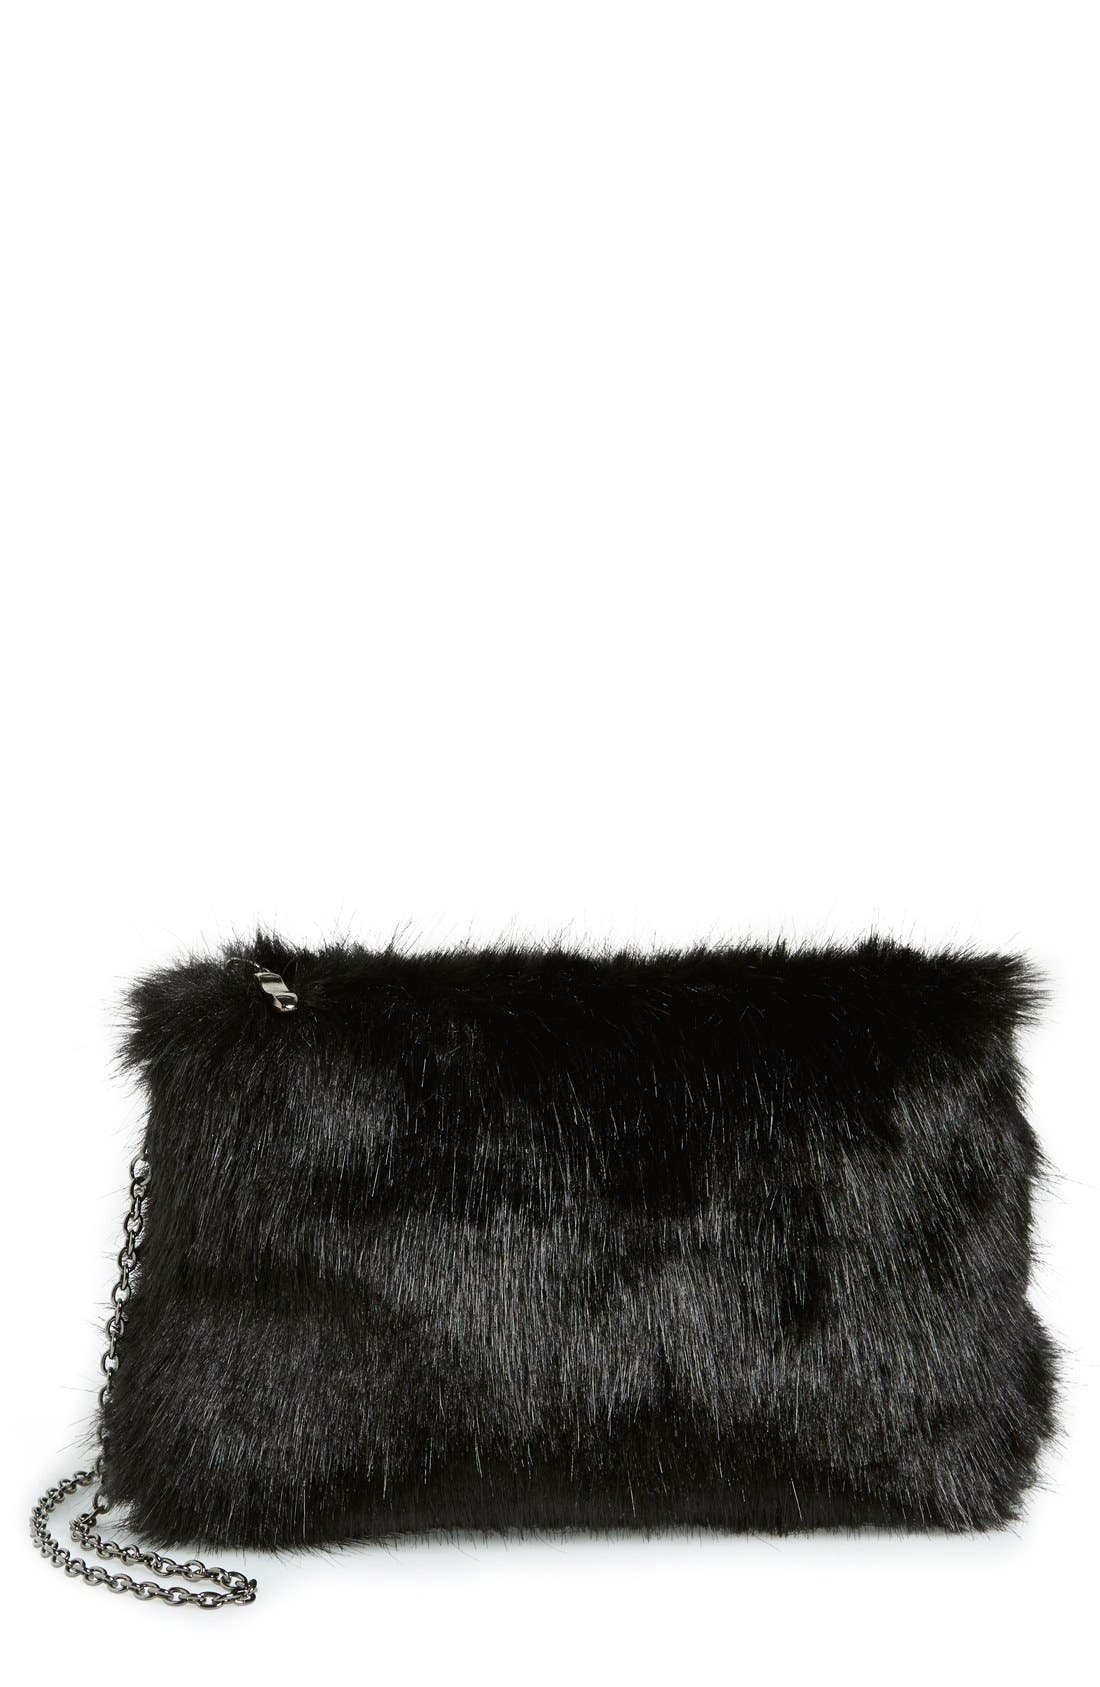 Alternate Image 1 Selected - No Brand Needed Faux Fur Convertible Clutch